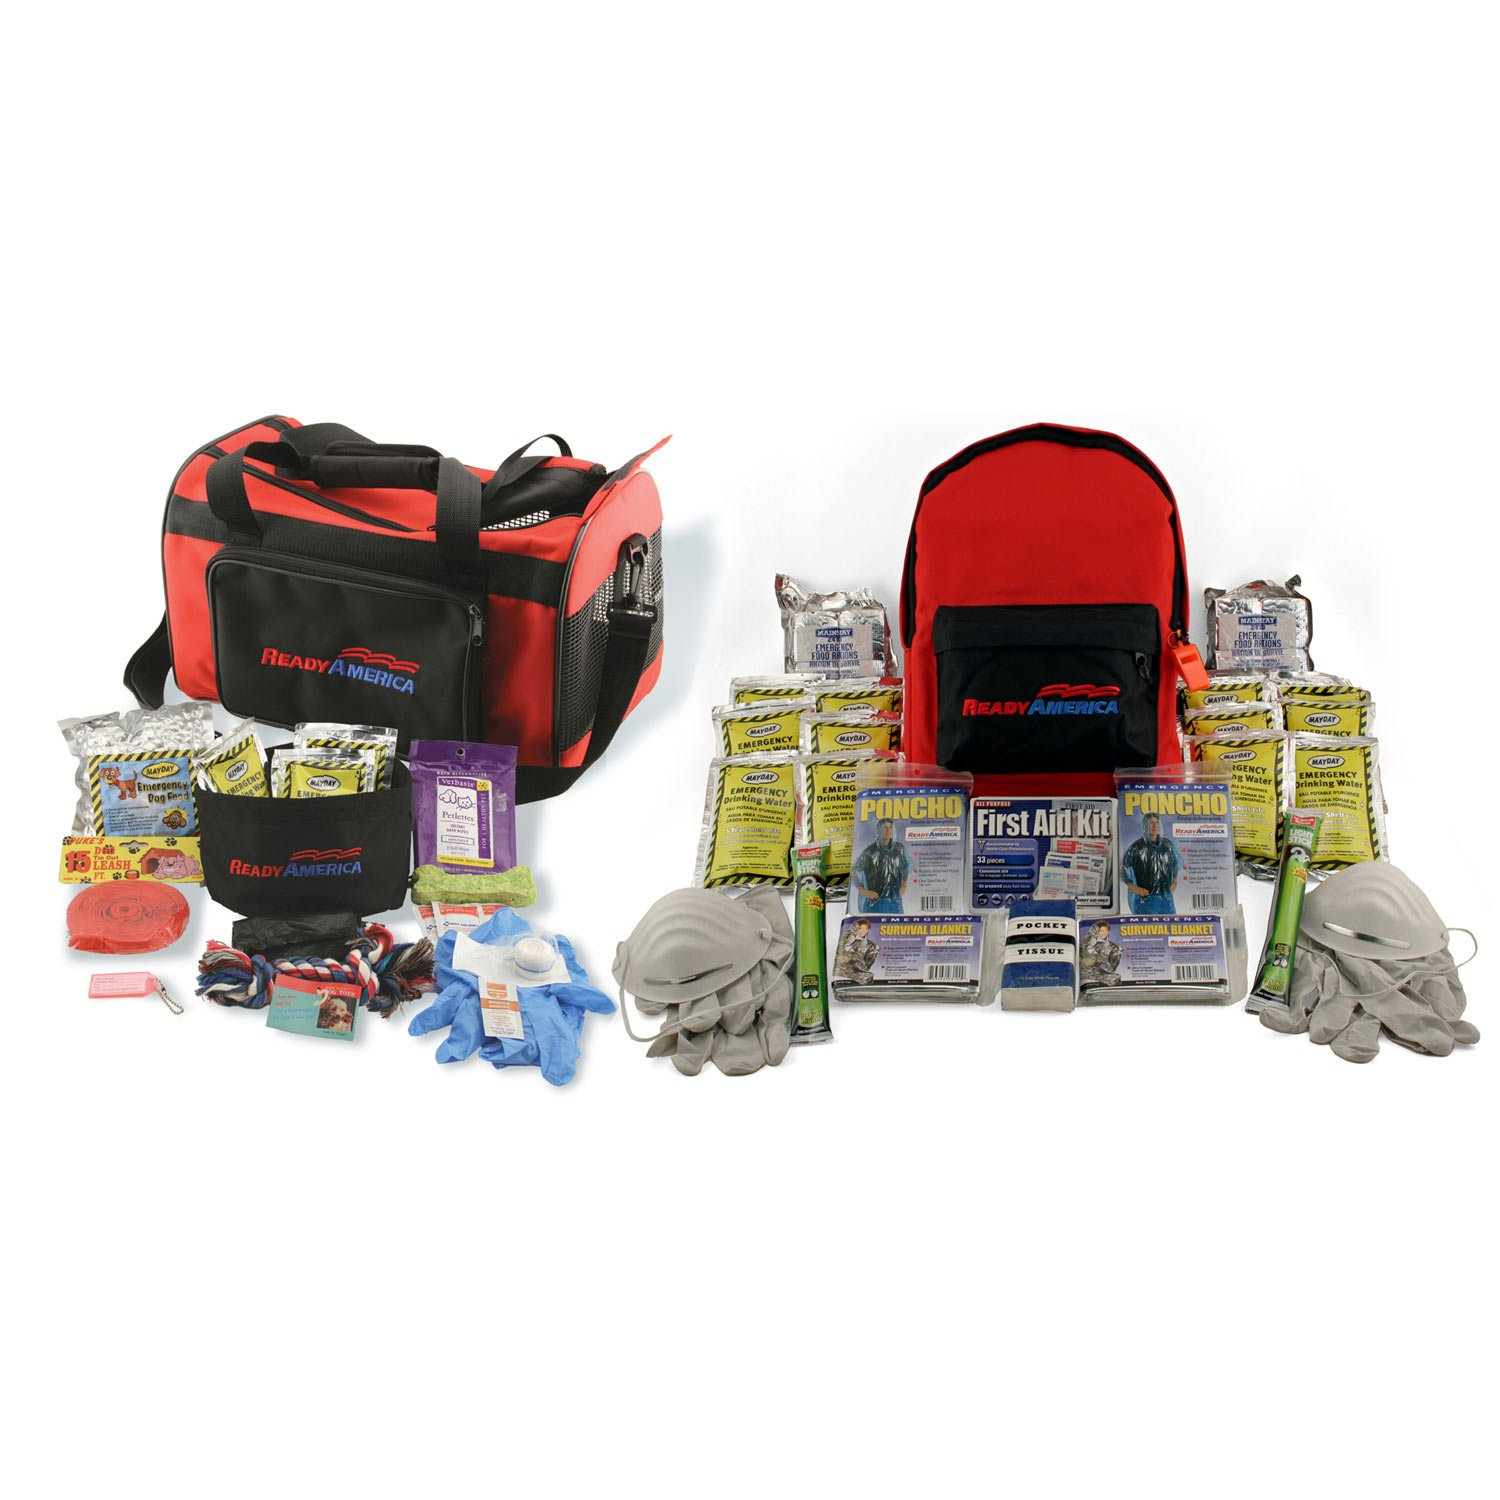 Ready America Grab 'n Go Small Dog and Two Person 3 Day Emergency Kit